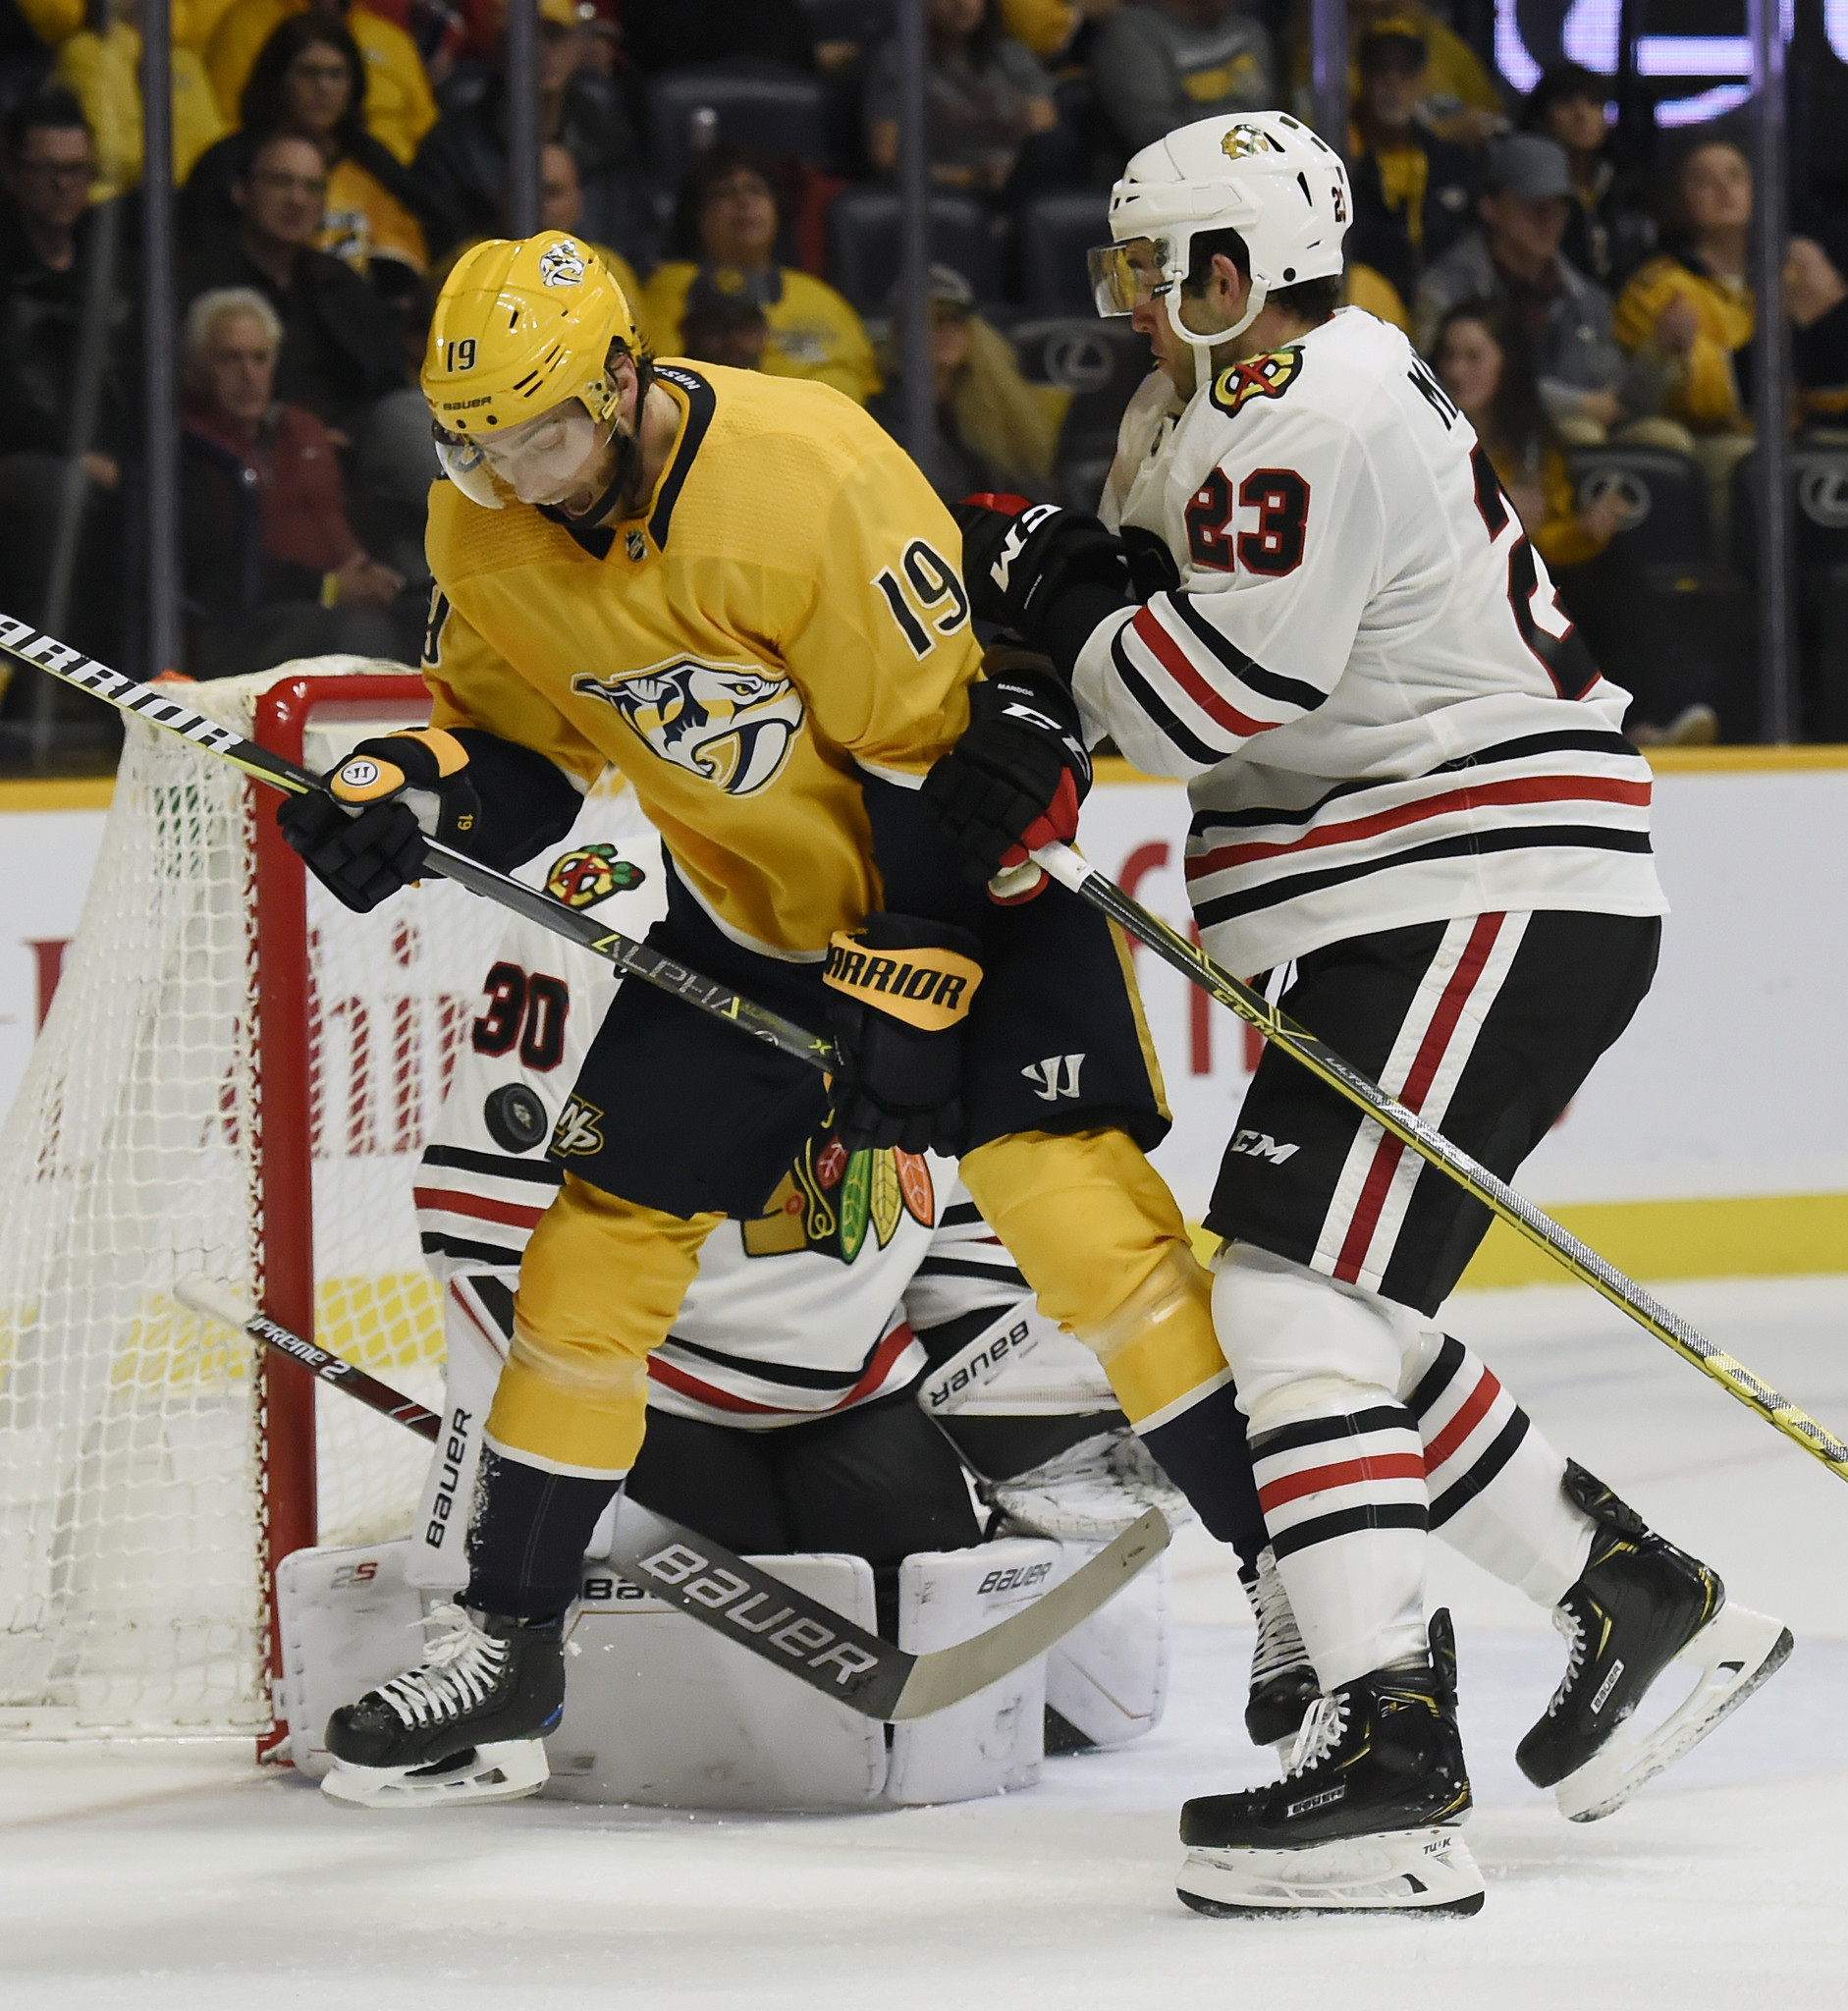 3 takeaways from the Blackhawks' 5-2 loss to the Predators, including Alex DeBrincat sticking up for a teammate